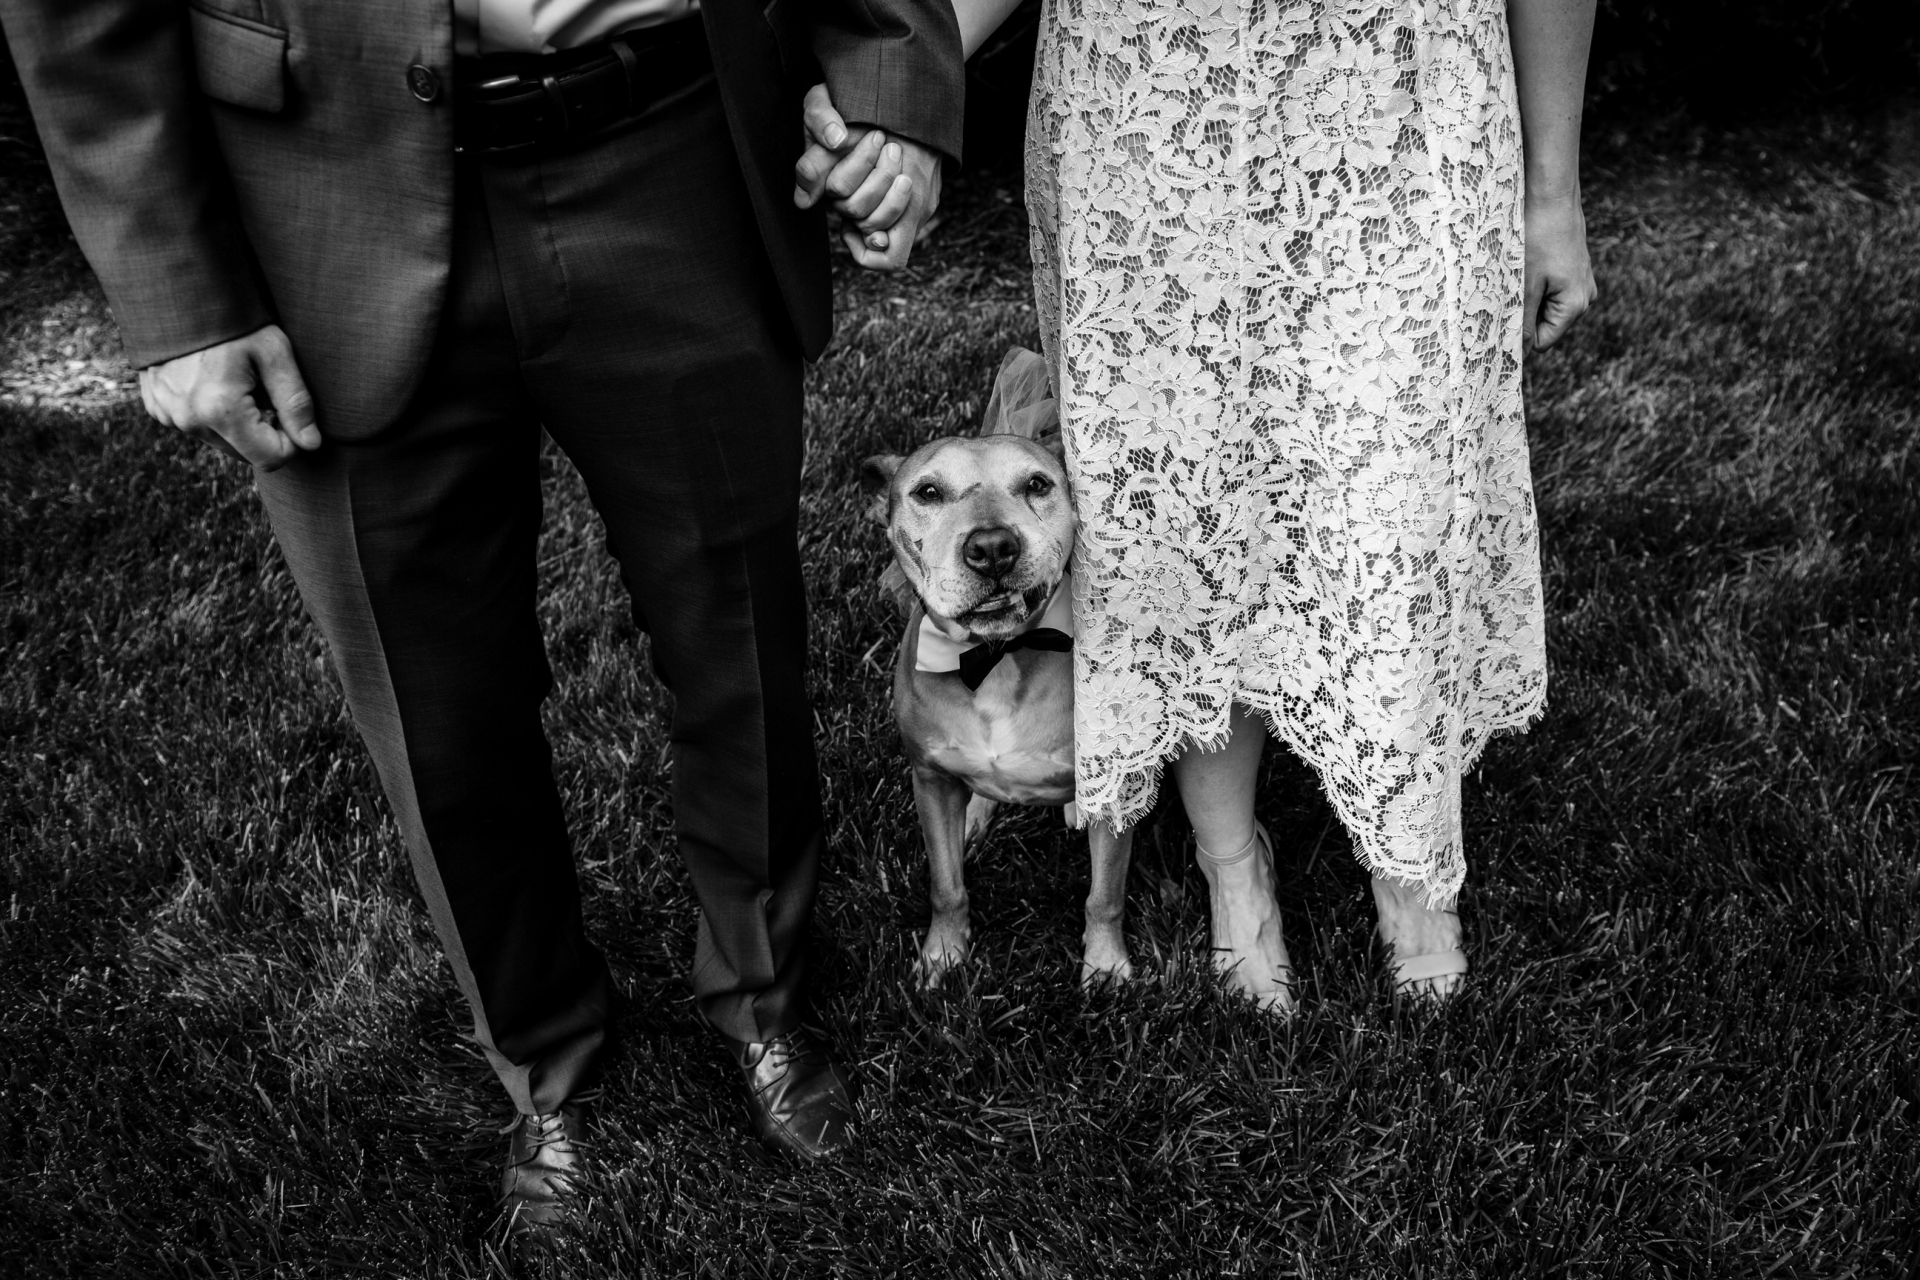 Backyard Elopement Photography | The newlywed's dog is certainly happy to have them both at home on this special day